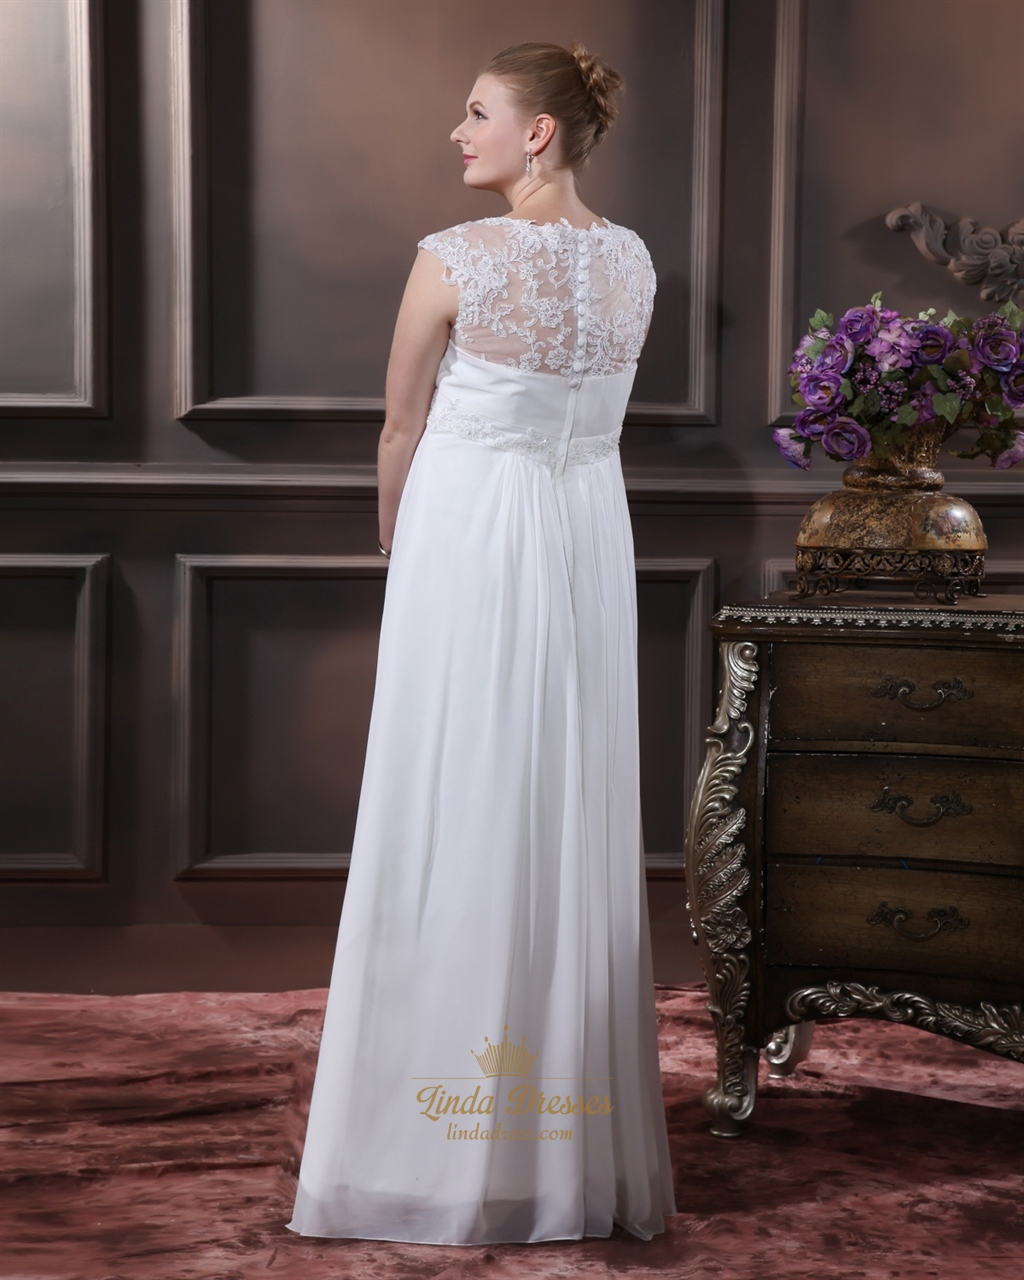 Wedding Gowns With Cap Sleeves: Ivory Chiffon V Neck Cap Sleeve Wedding Dress With Sheer